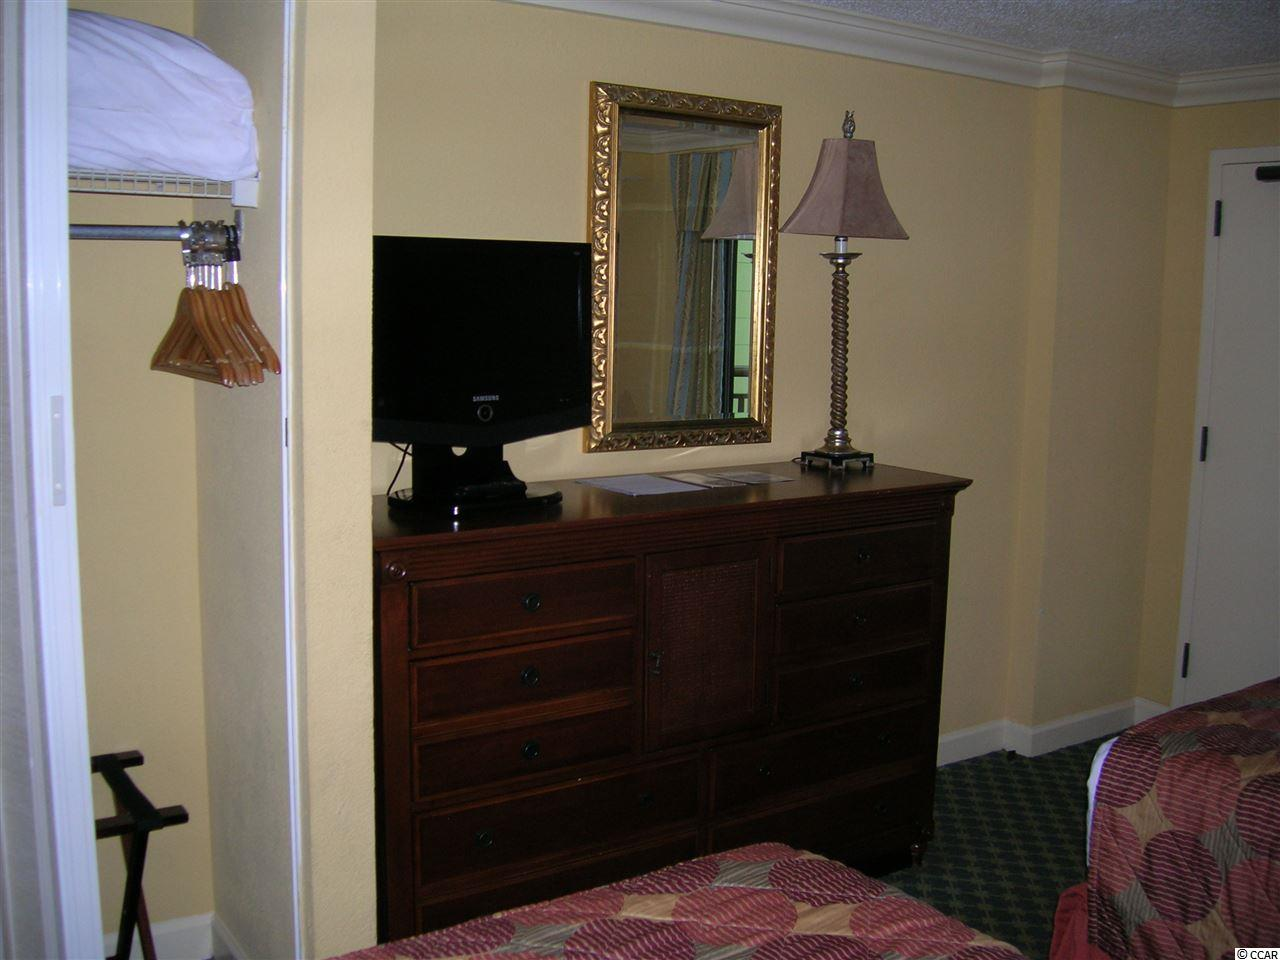 1 bedroom  HOLIDAY INN PAVILION condo for sale